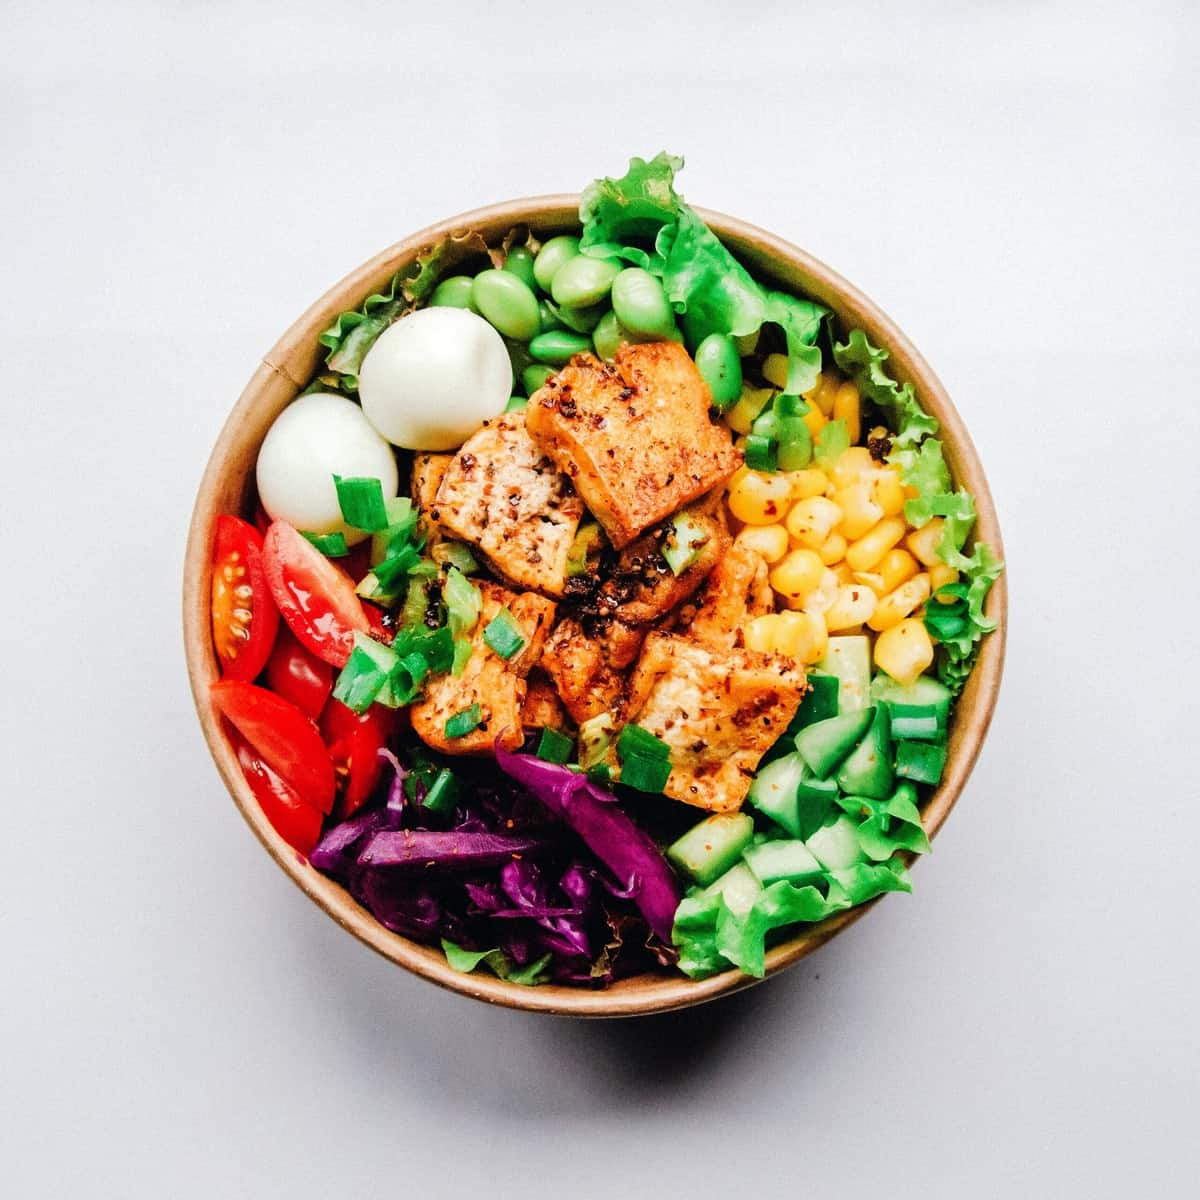 A close up of a tofu salad in a bowl with edamame, cucumber, tomato, corn, and cheese for those following the AB blood type diet.